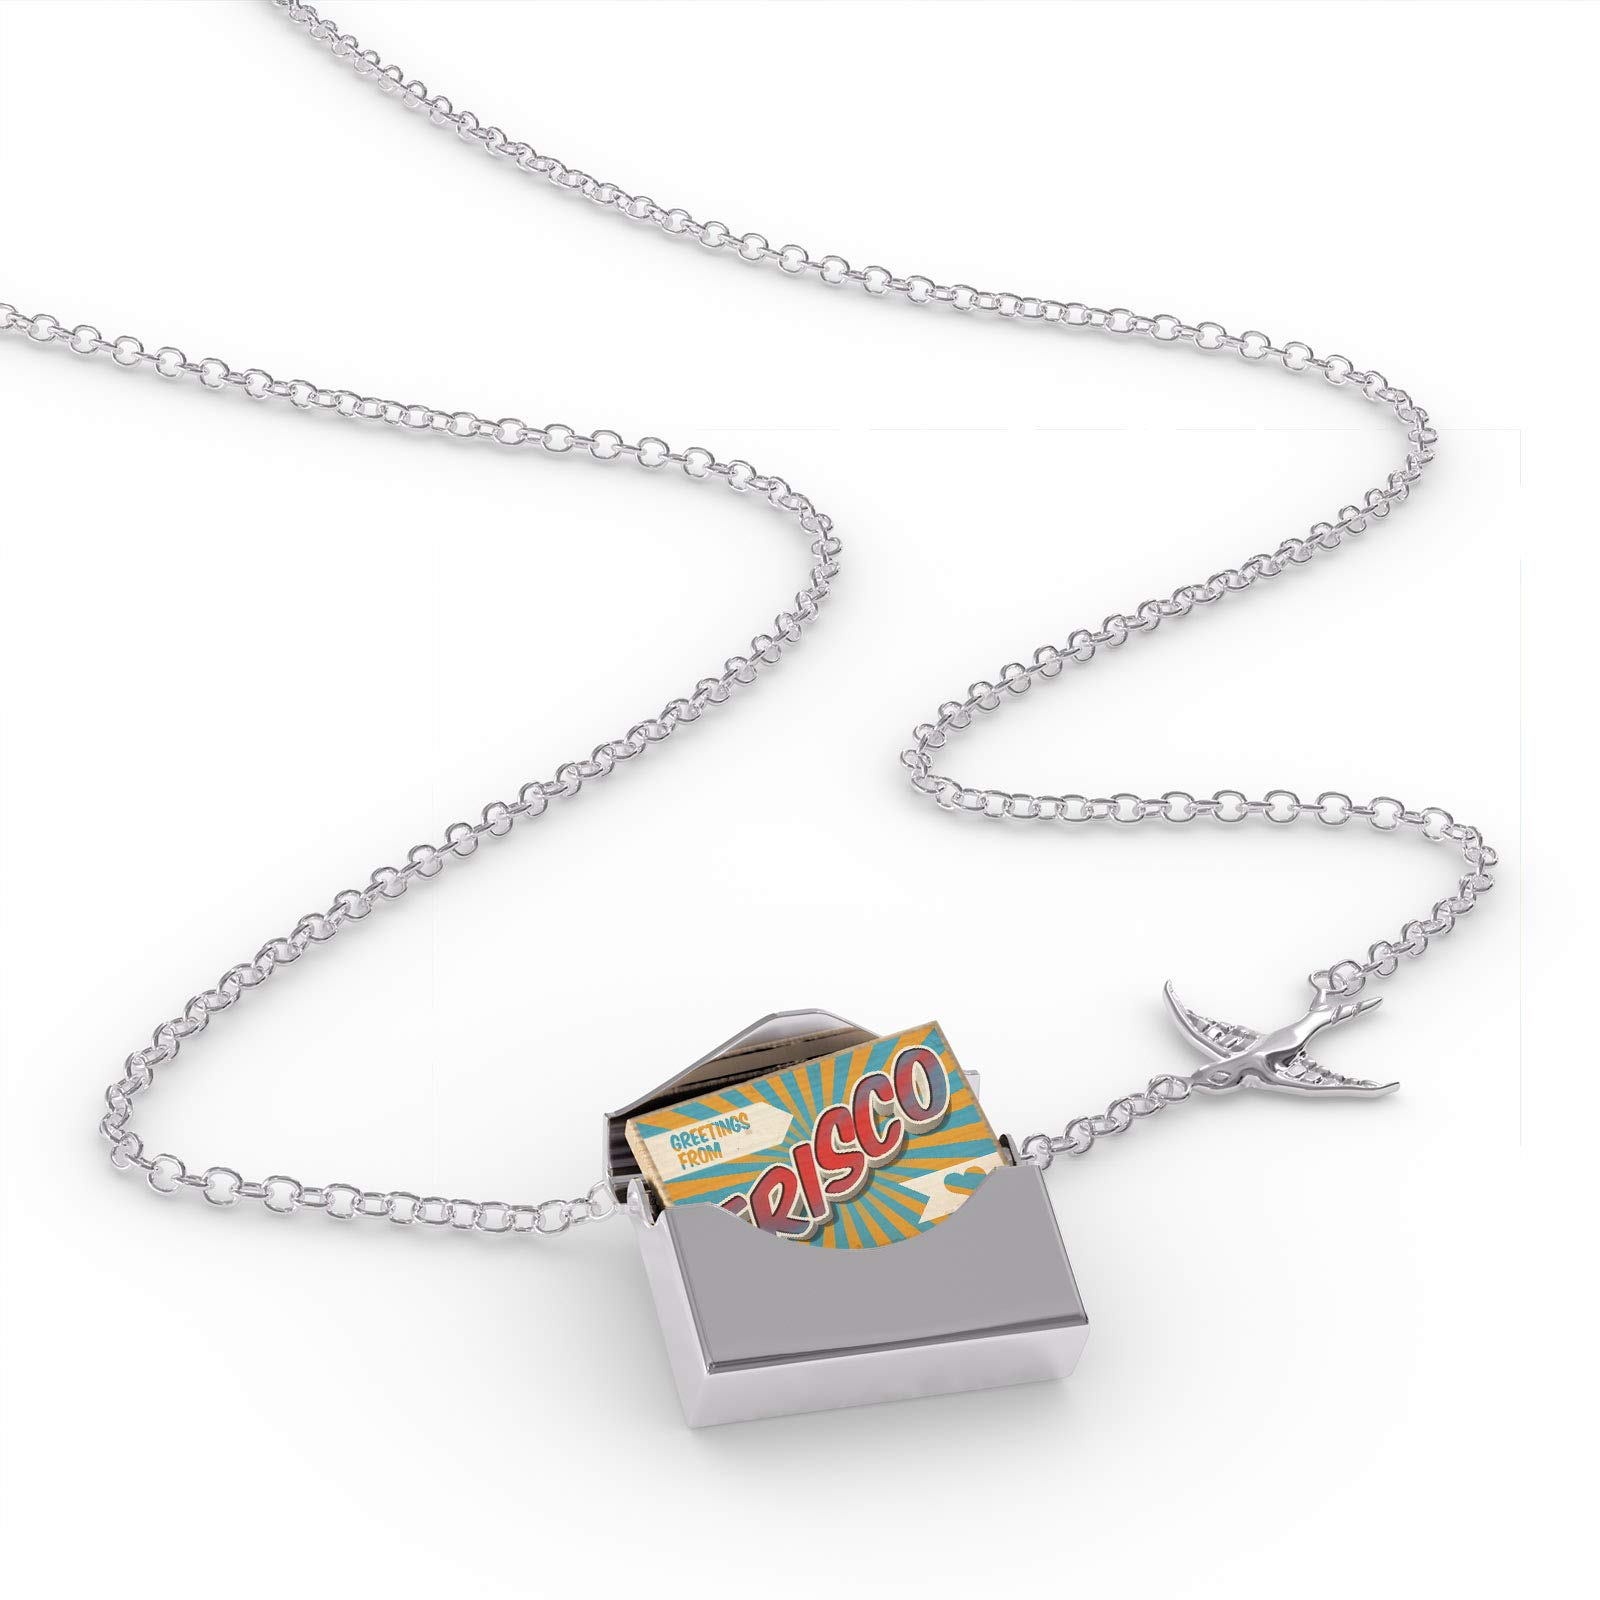 NEONBLOND Locket Necklace Greetings from Frisco, Vintage Postcard in a Silver Envelope